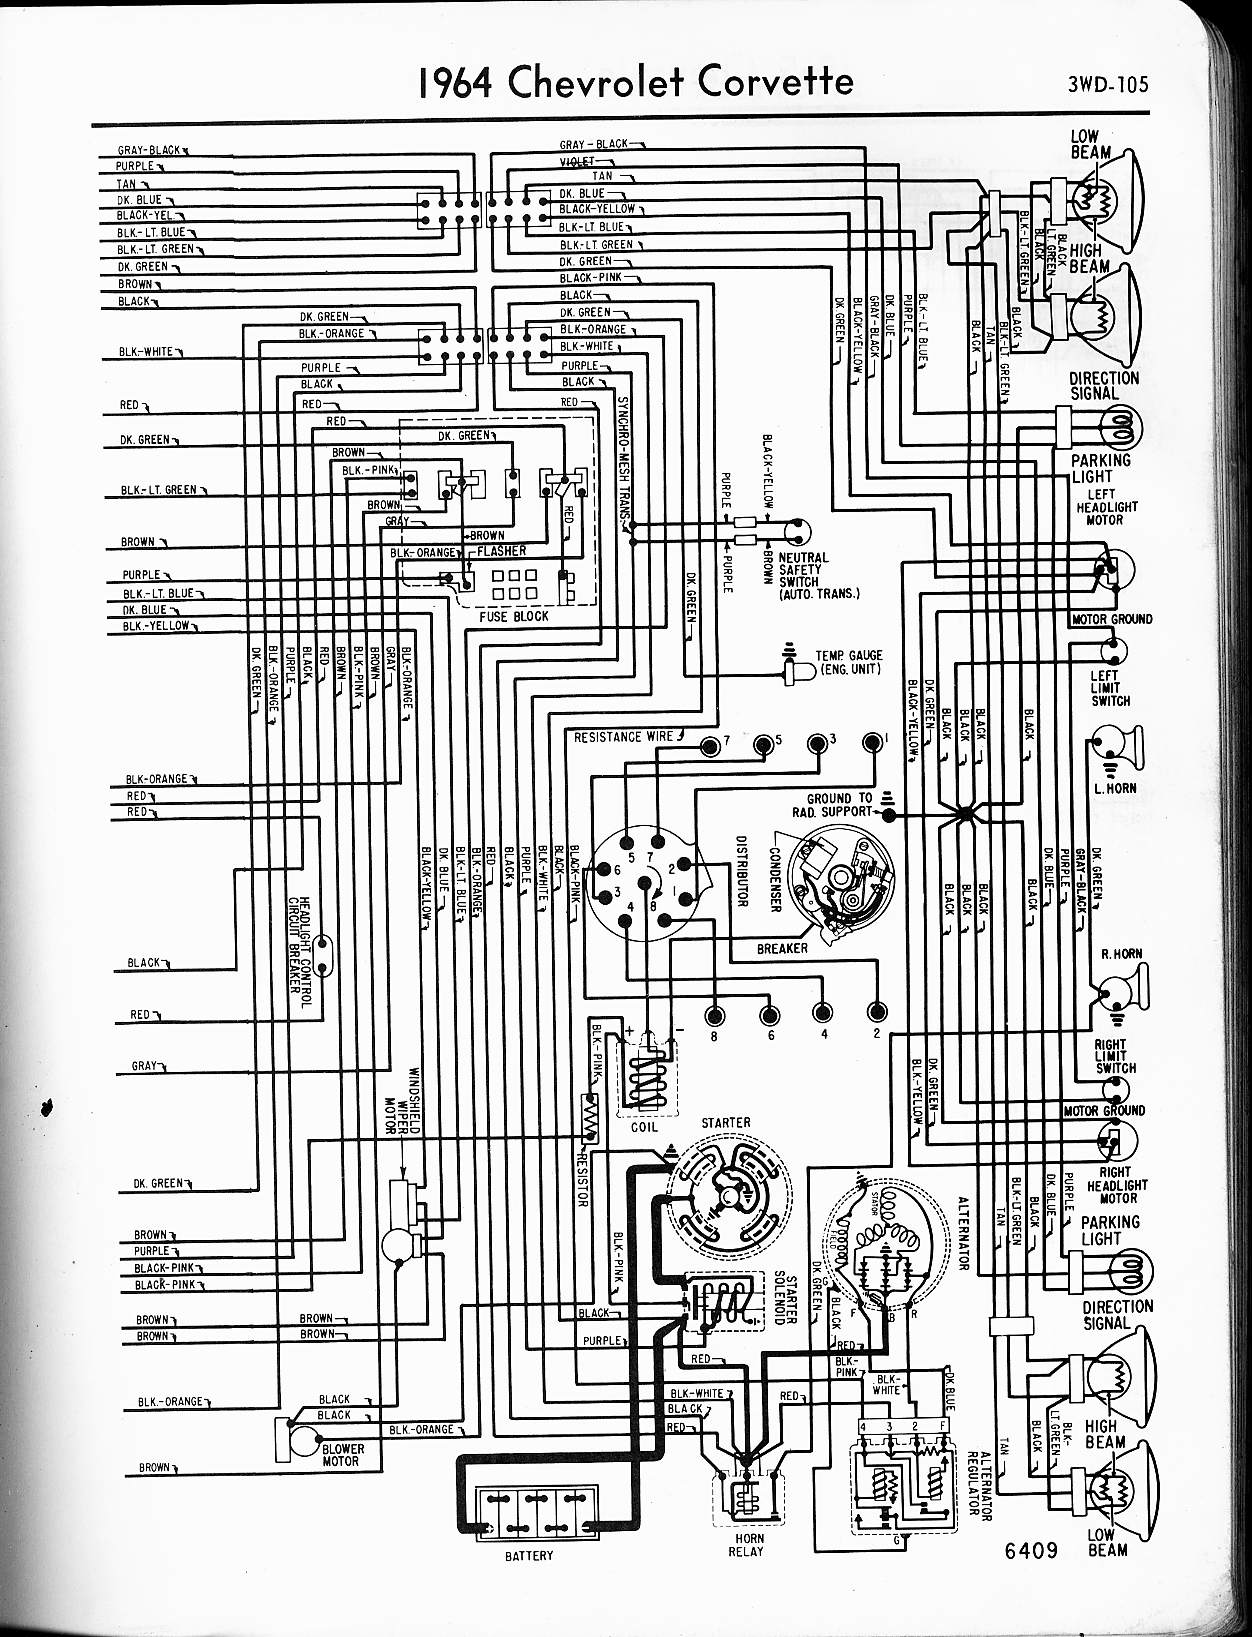 Wiring Diagram For 1970 Chevy Impala Libraries C 10 Headlight 57 65 Diagramswiring 7